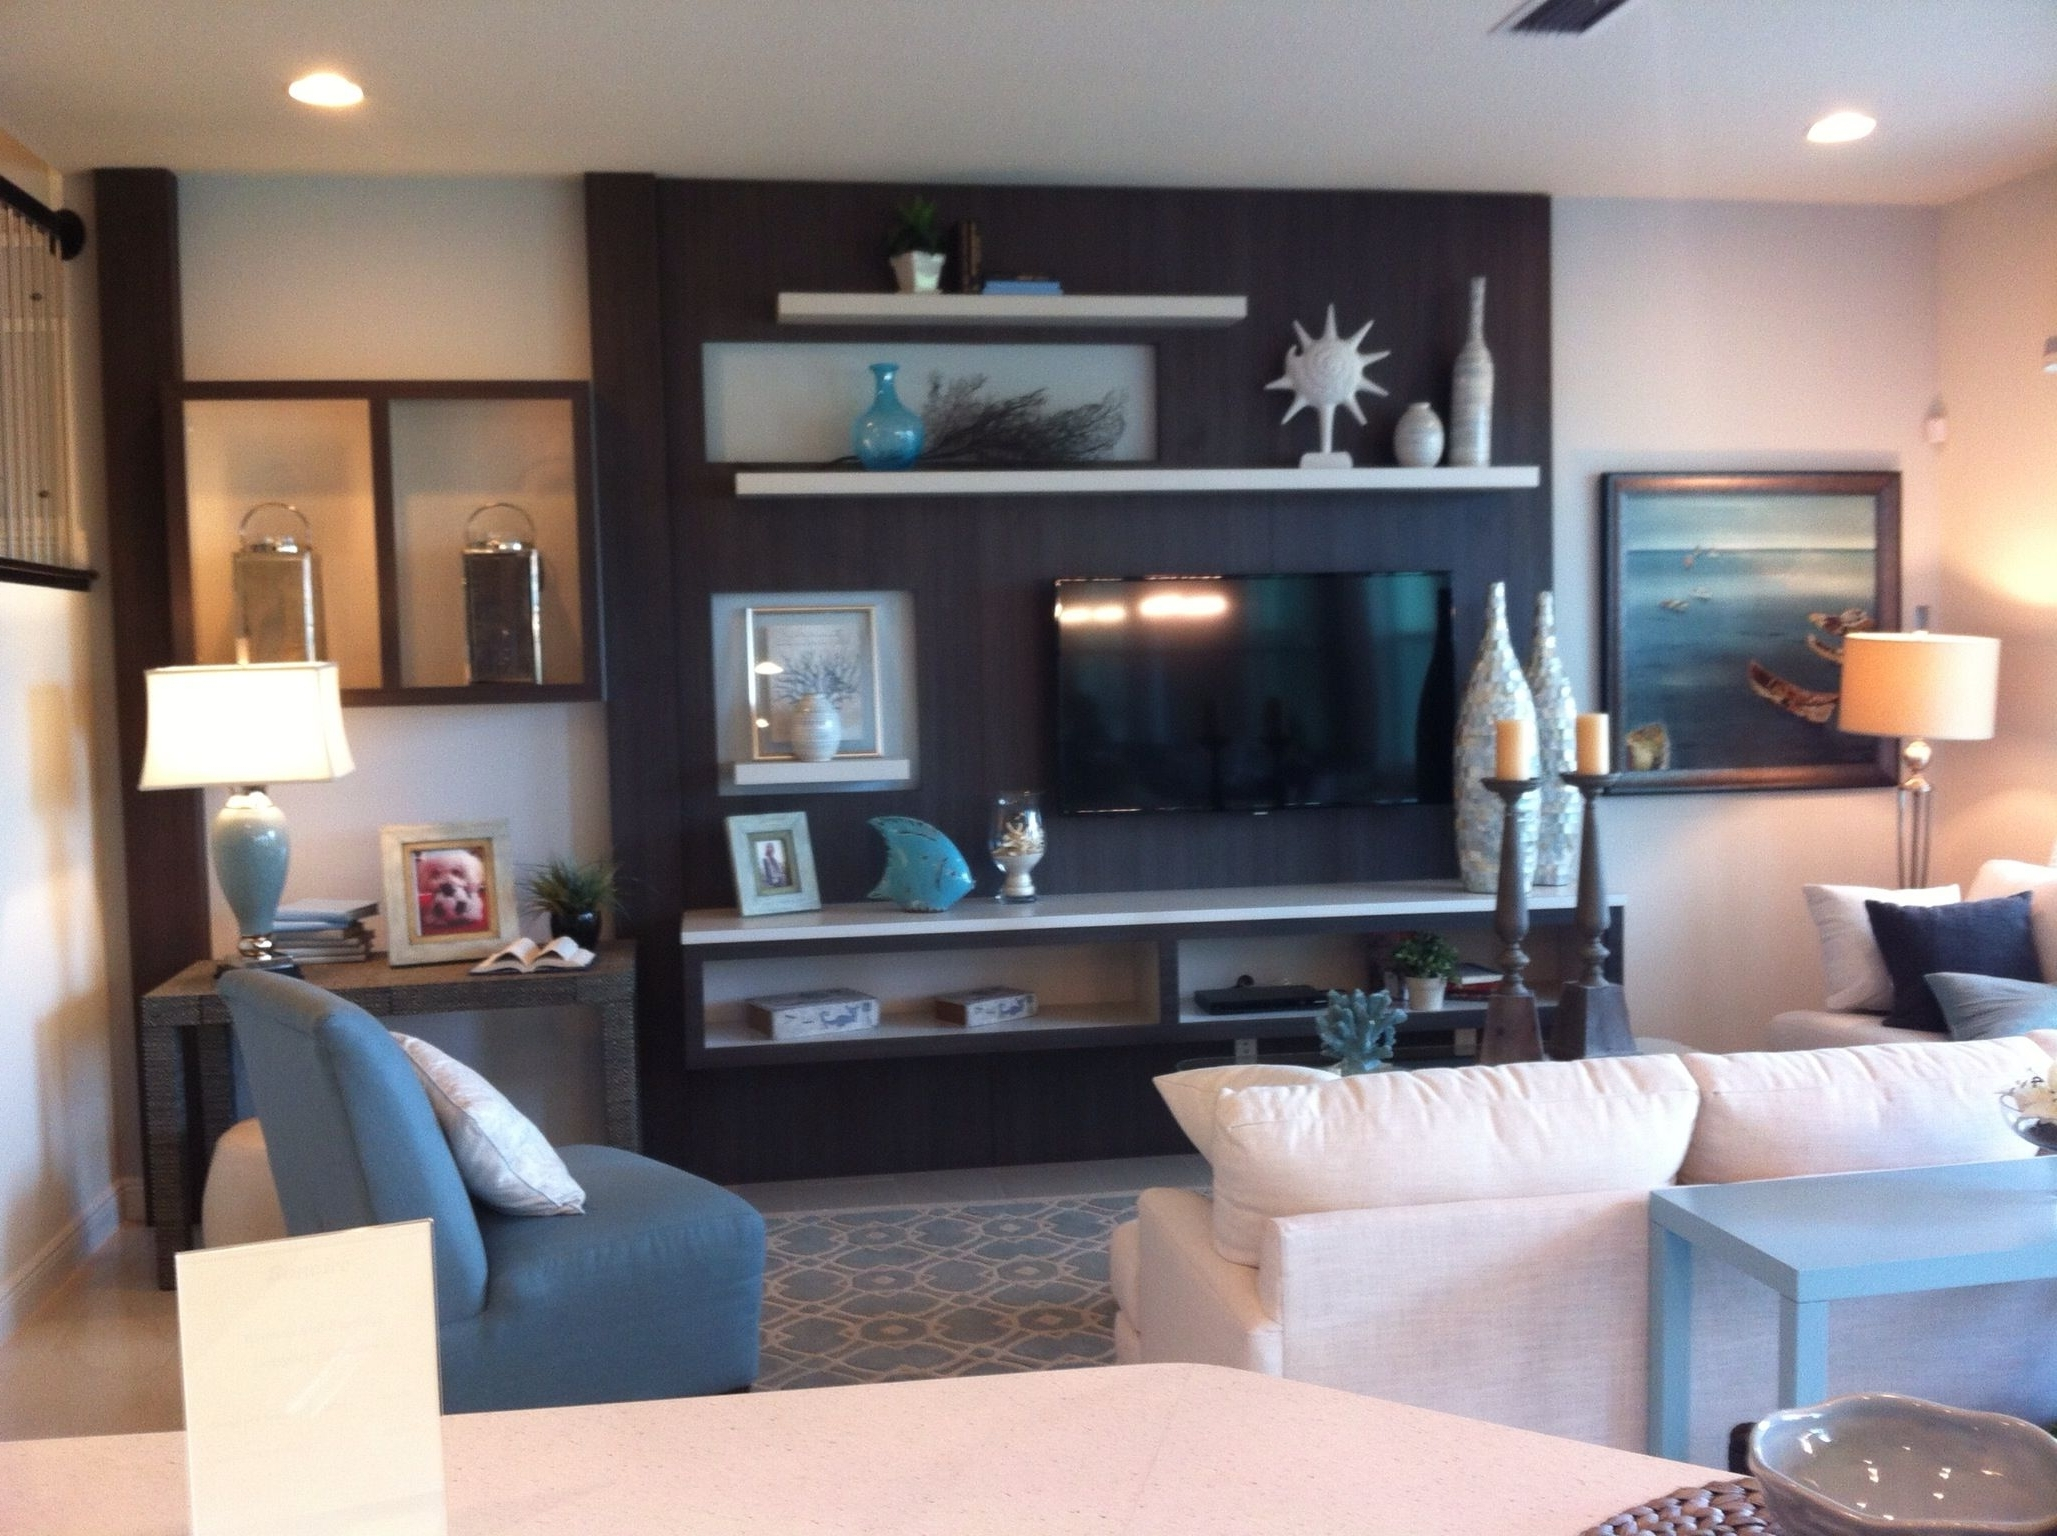 Wall Accents With Tv In Well Known Add An Accent Color In A Large Area Behind The Tv, But Maybe Not (View 2 of 15)